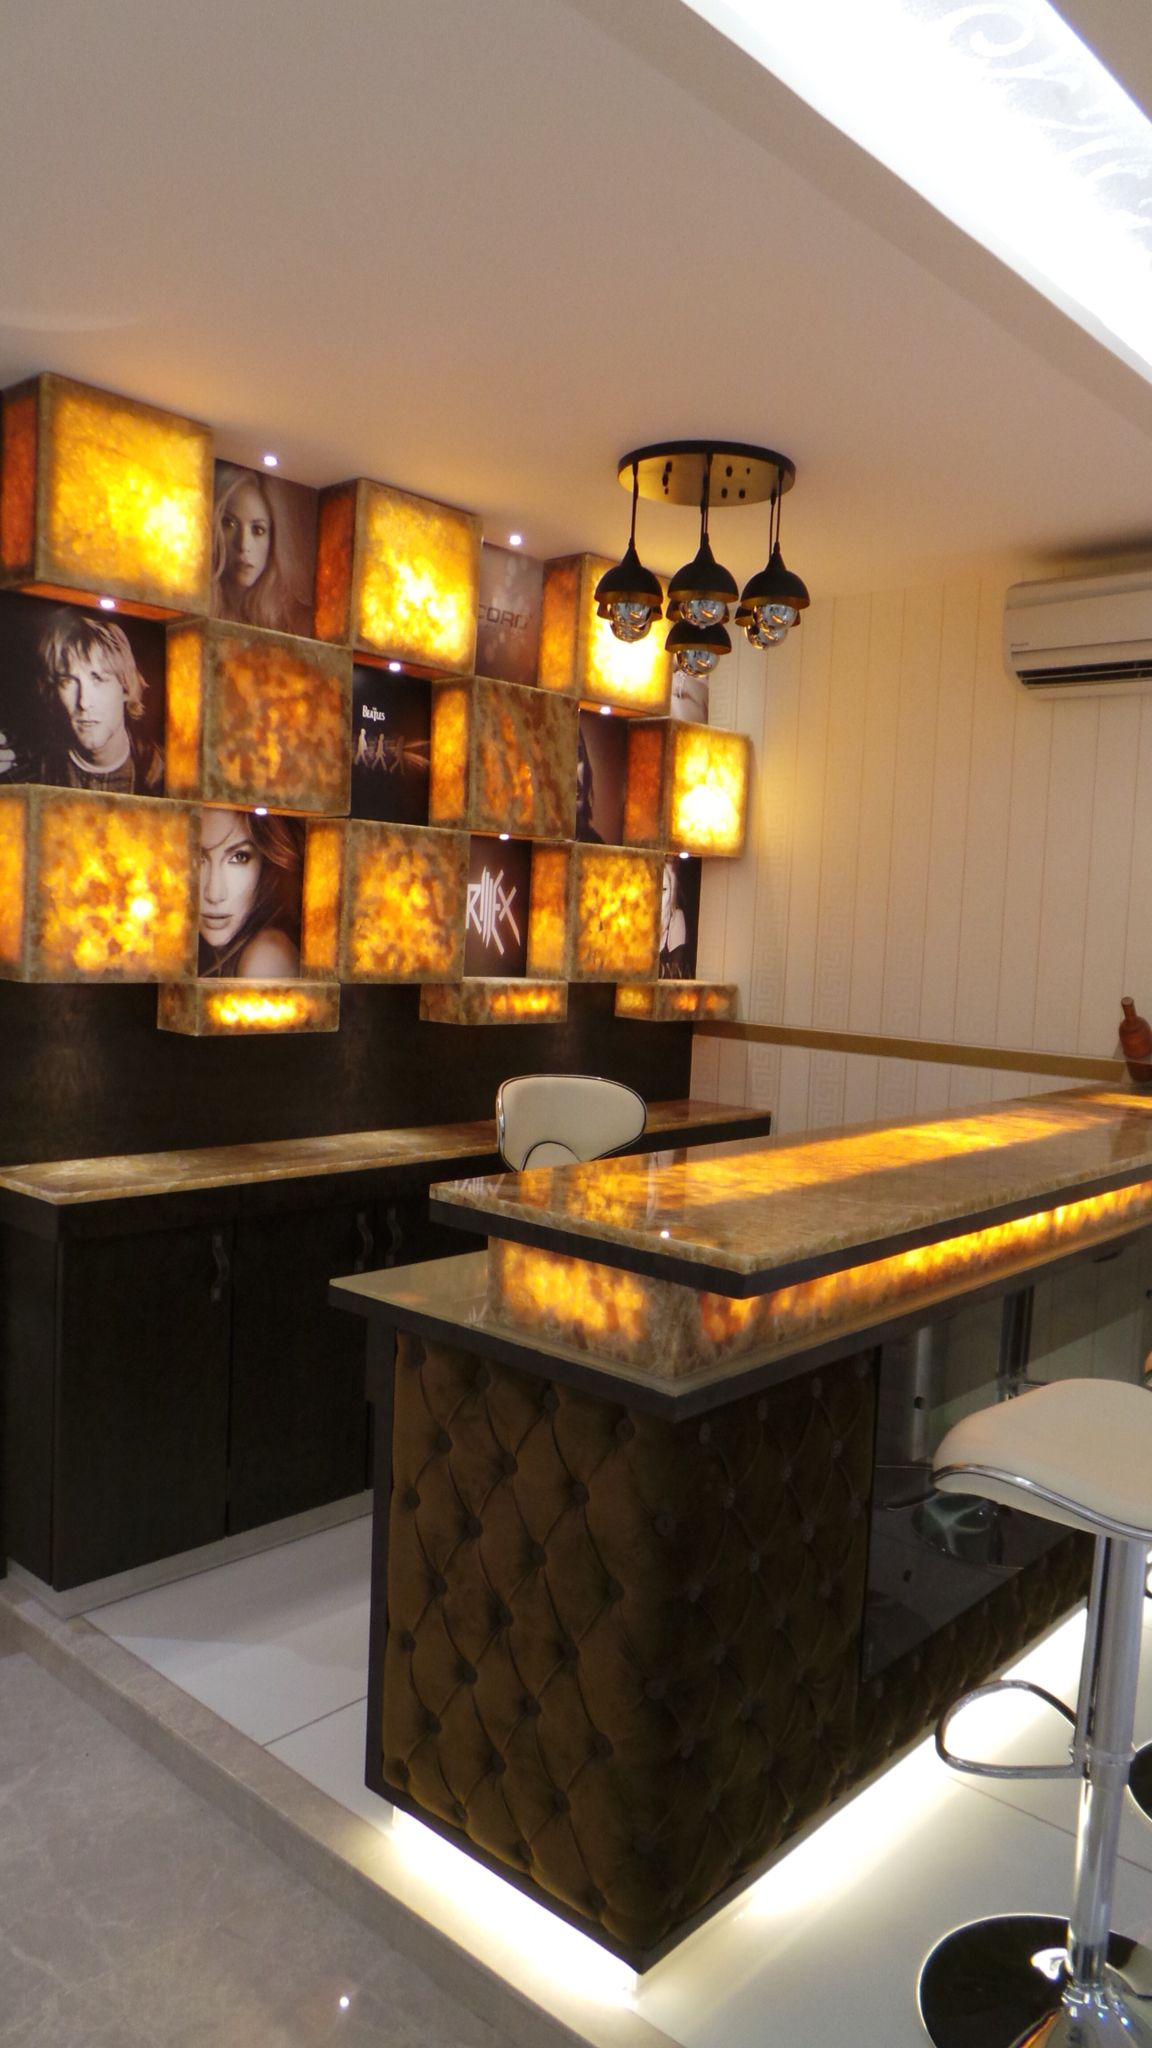 Onyx marble bar counter designed by SONIVIPULDESIGNS